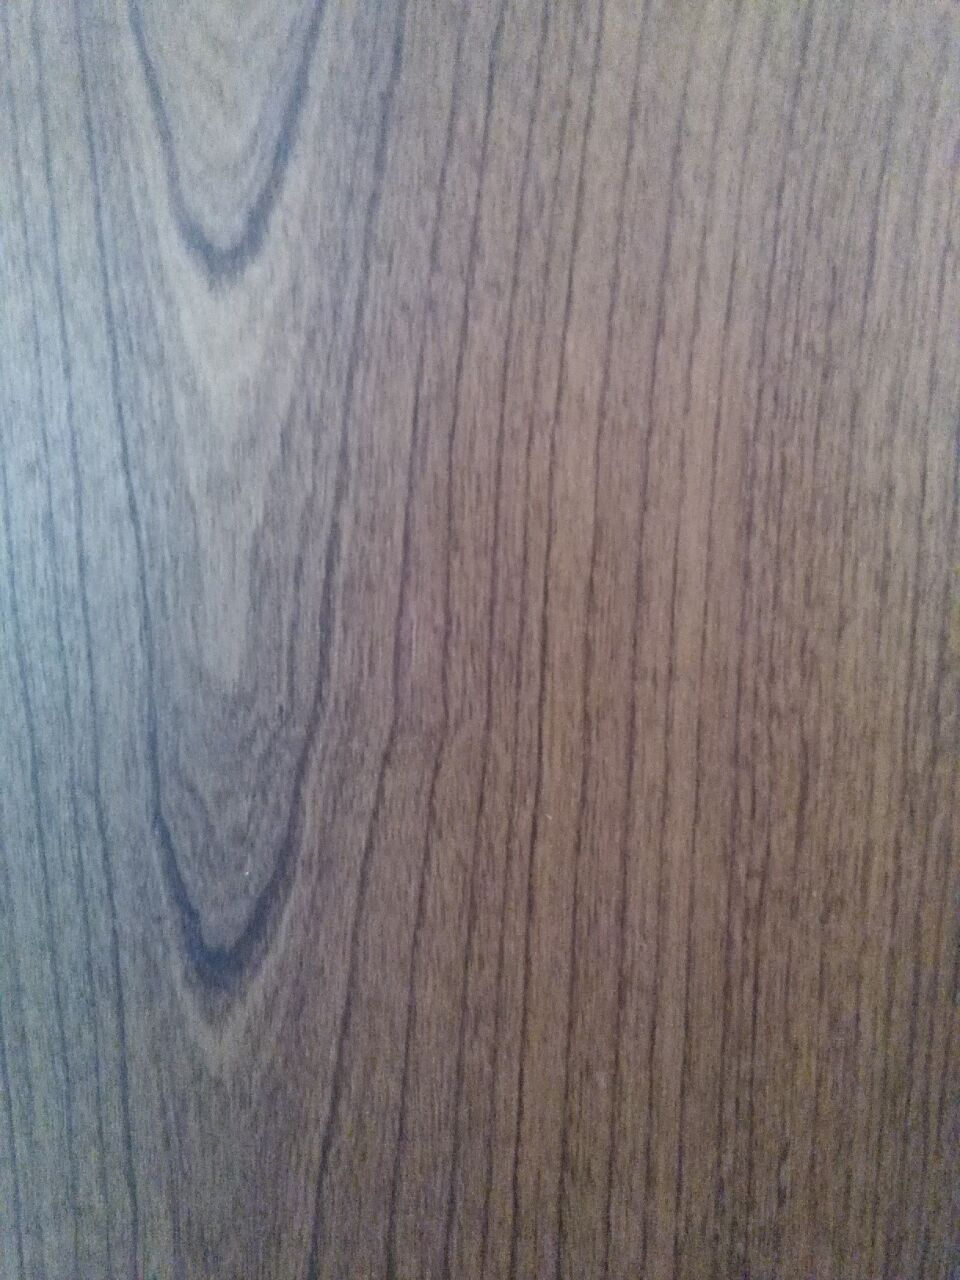 PVC Vinyl Wood Grain Film for Decoration